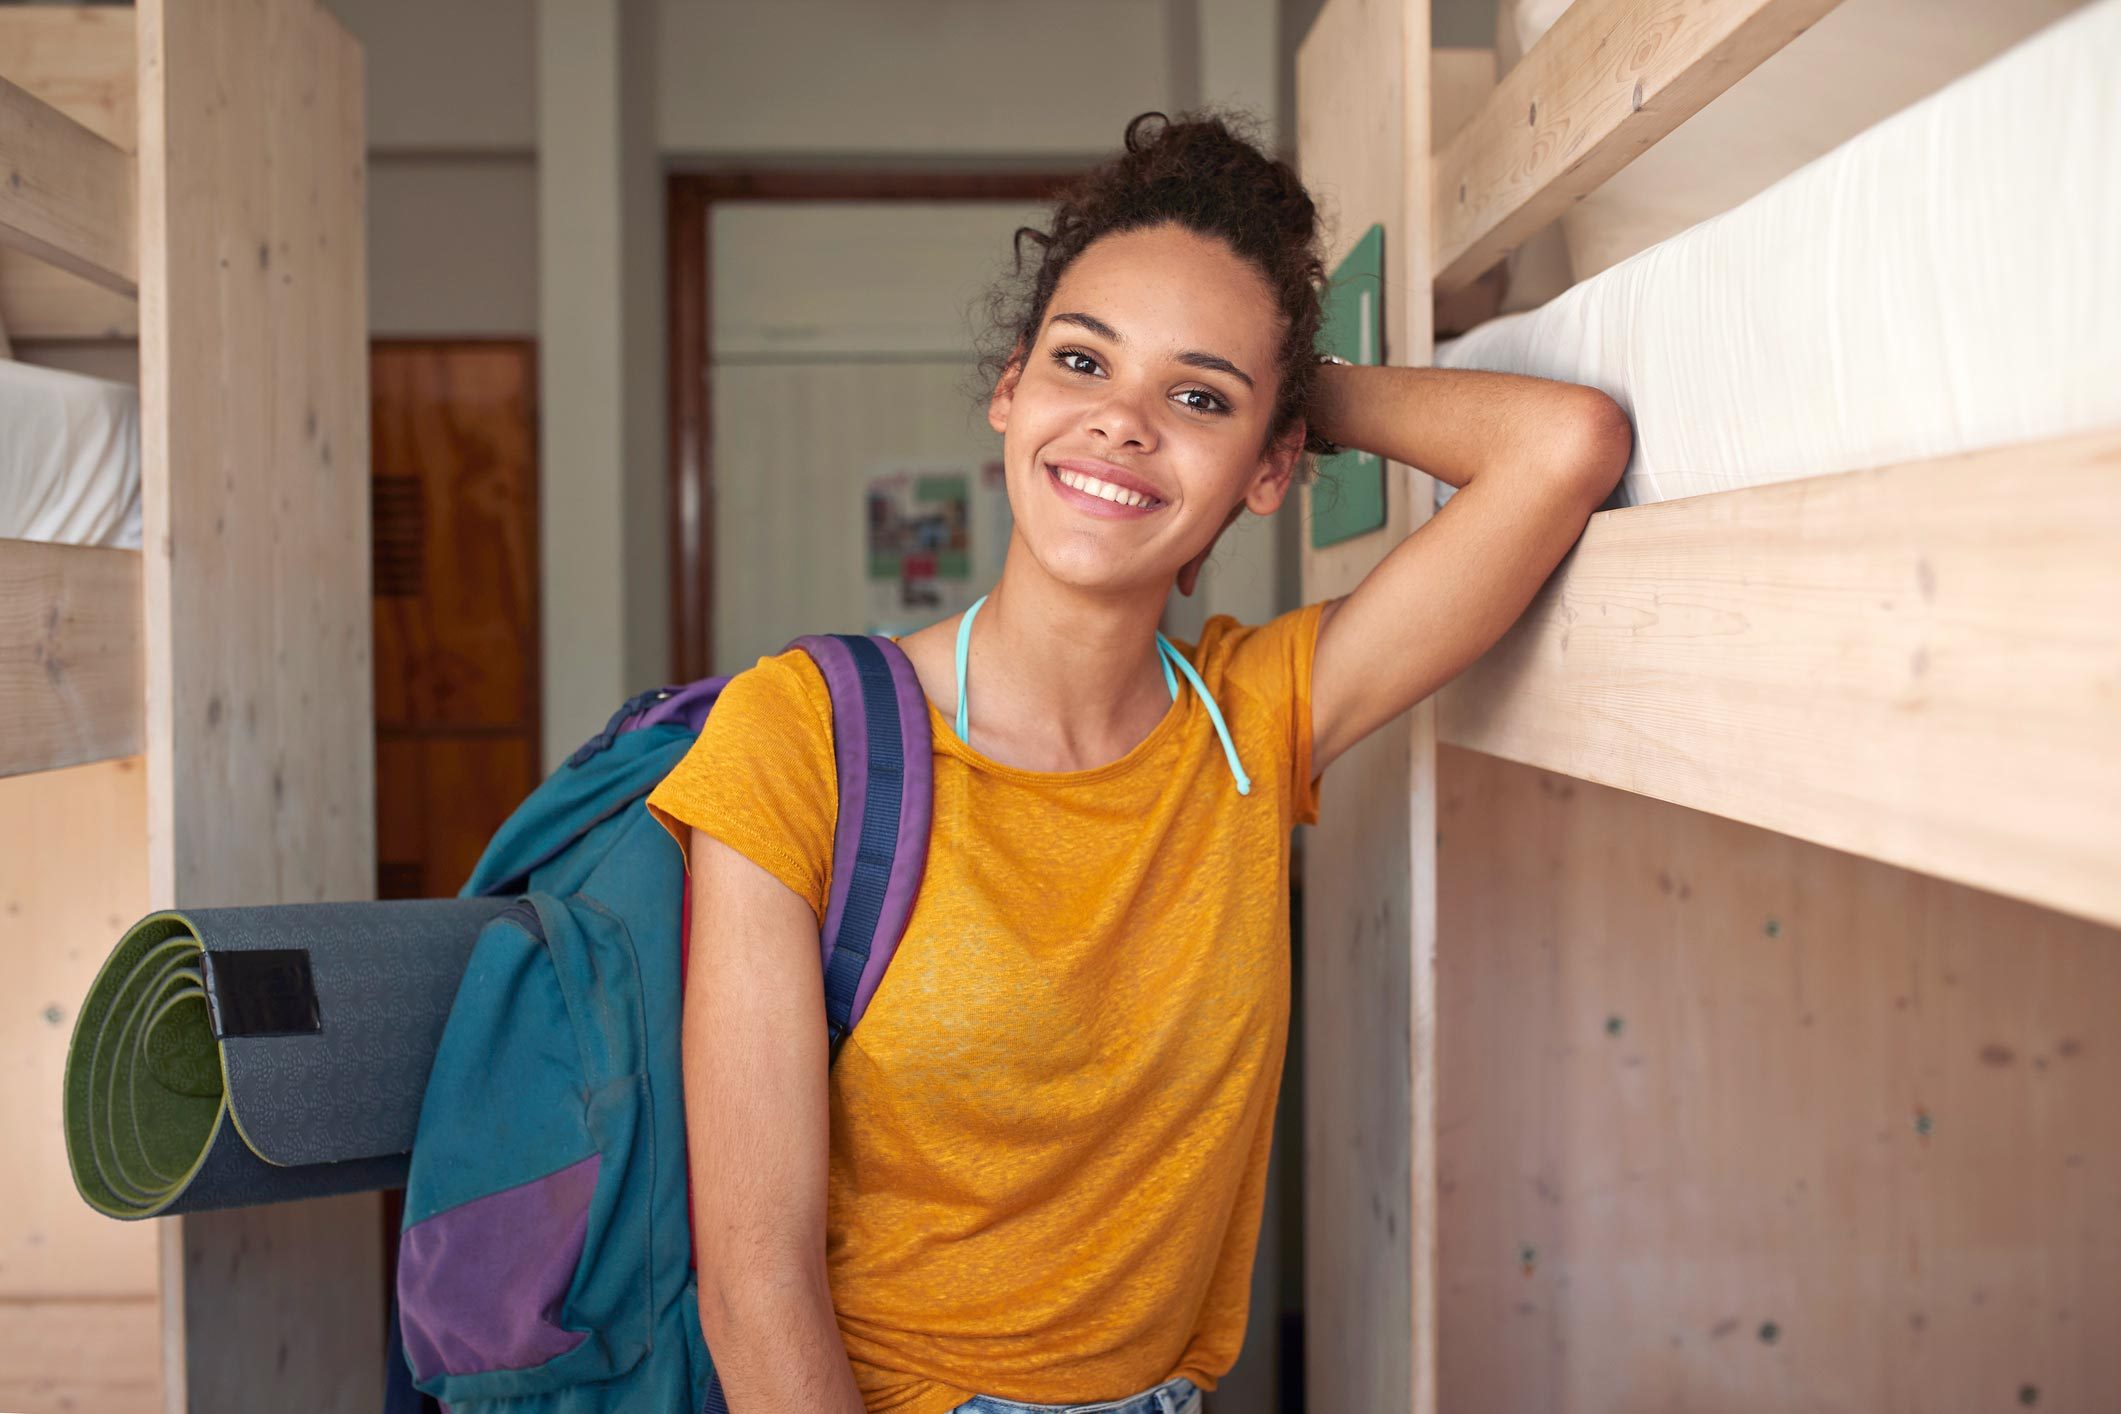 Portrait of young smiling woman at youth hostel